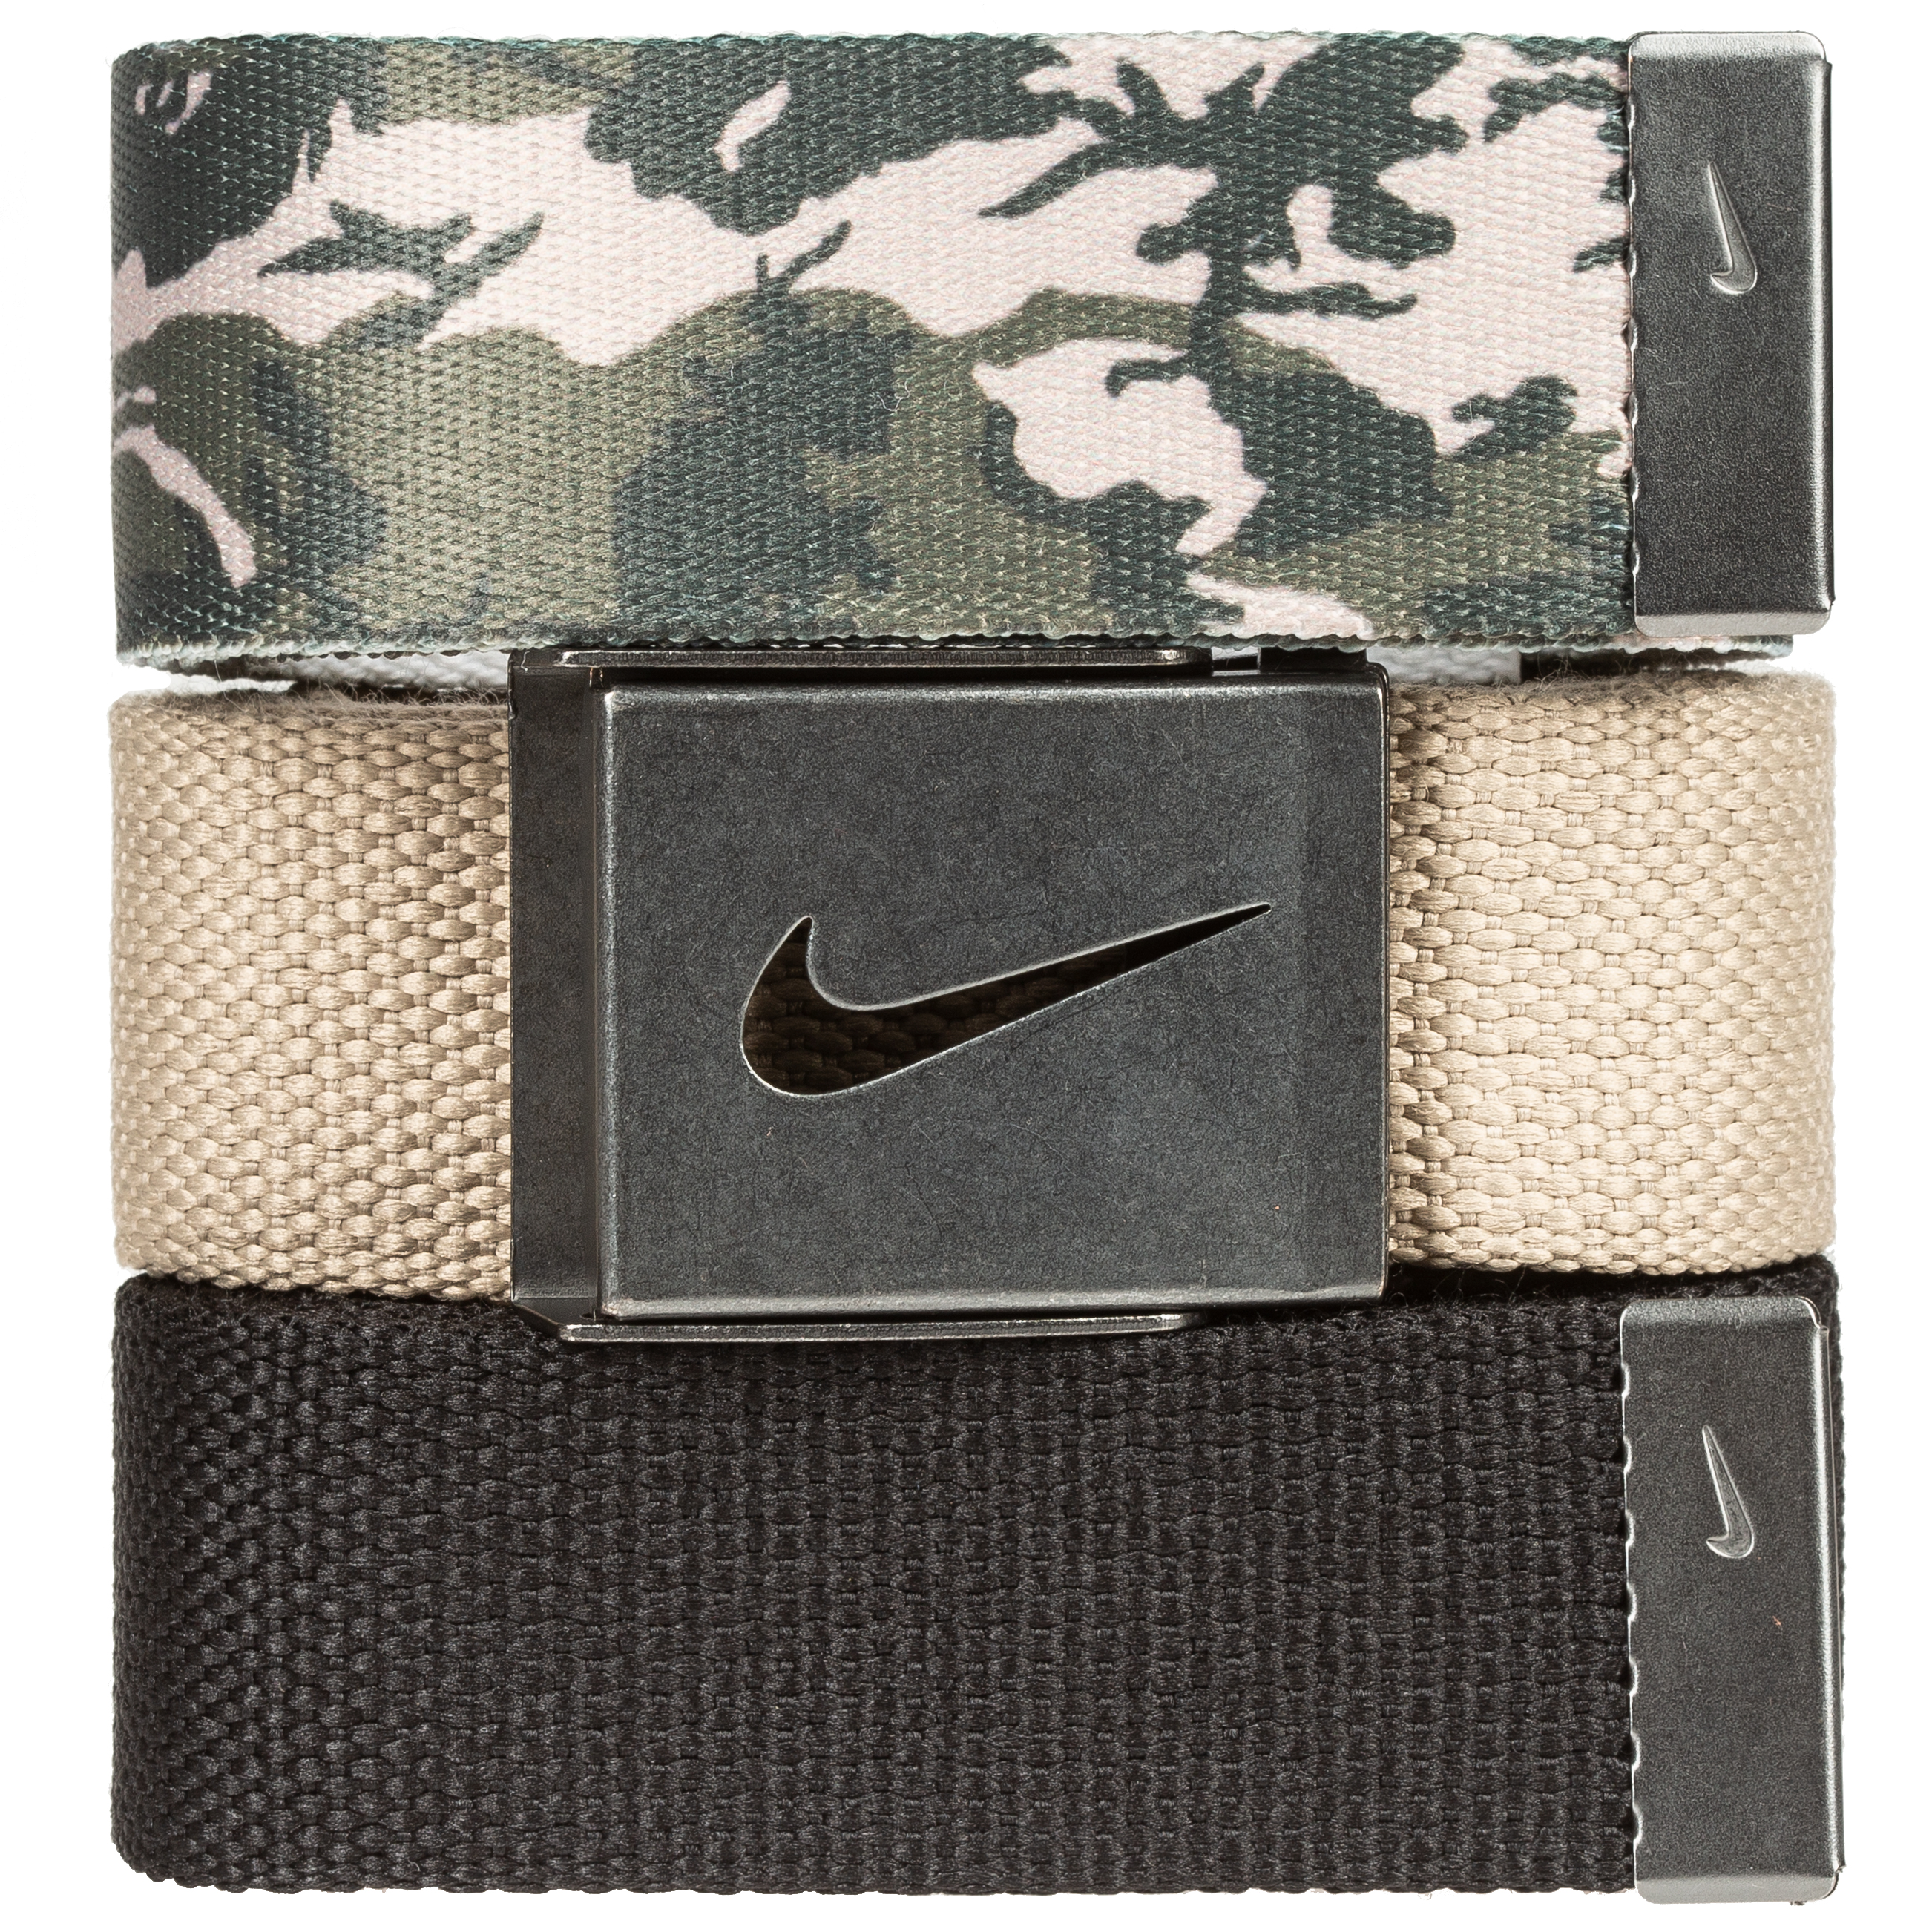 Nike Golf Men's 3 in 1 Web Pack Belts, One Size Fits Most - Select Colors! Cargo Khaki Camo/Khaki/Black